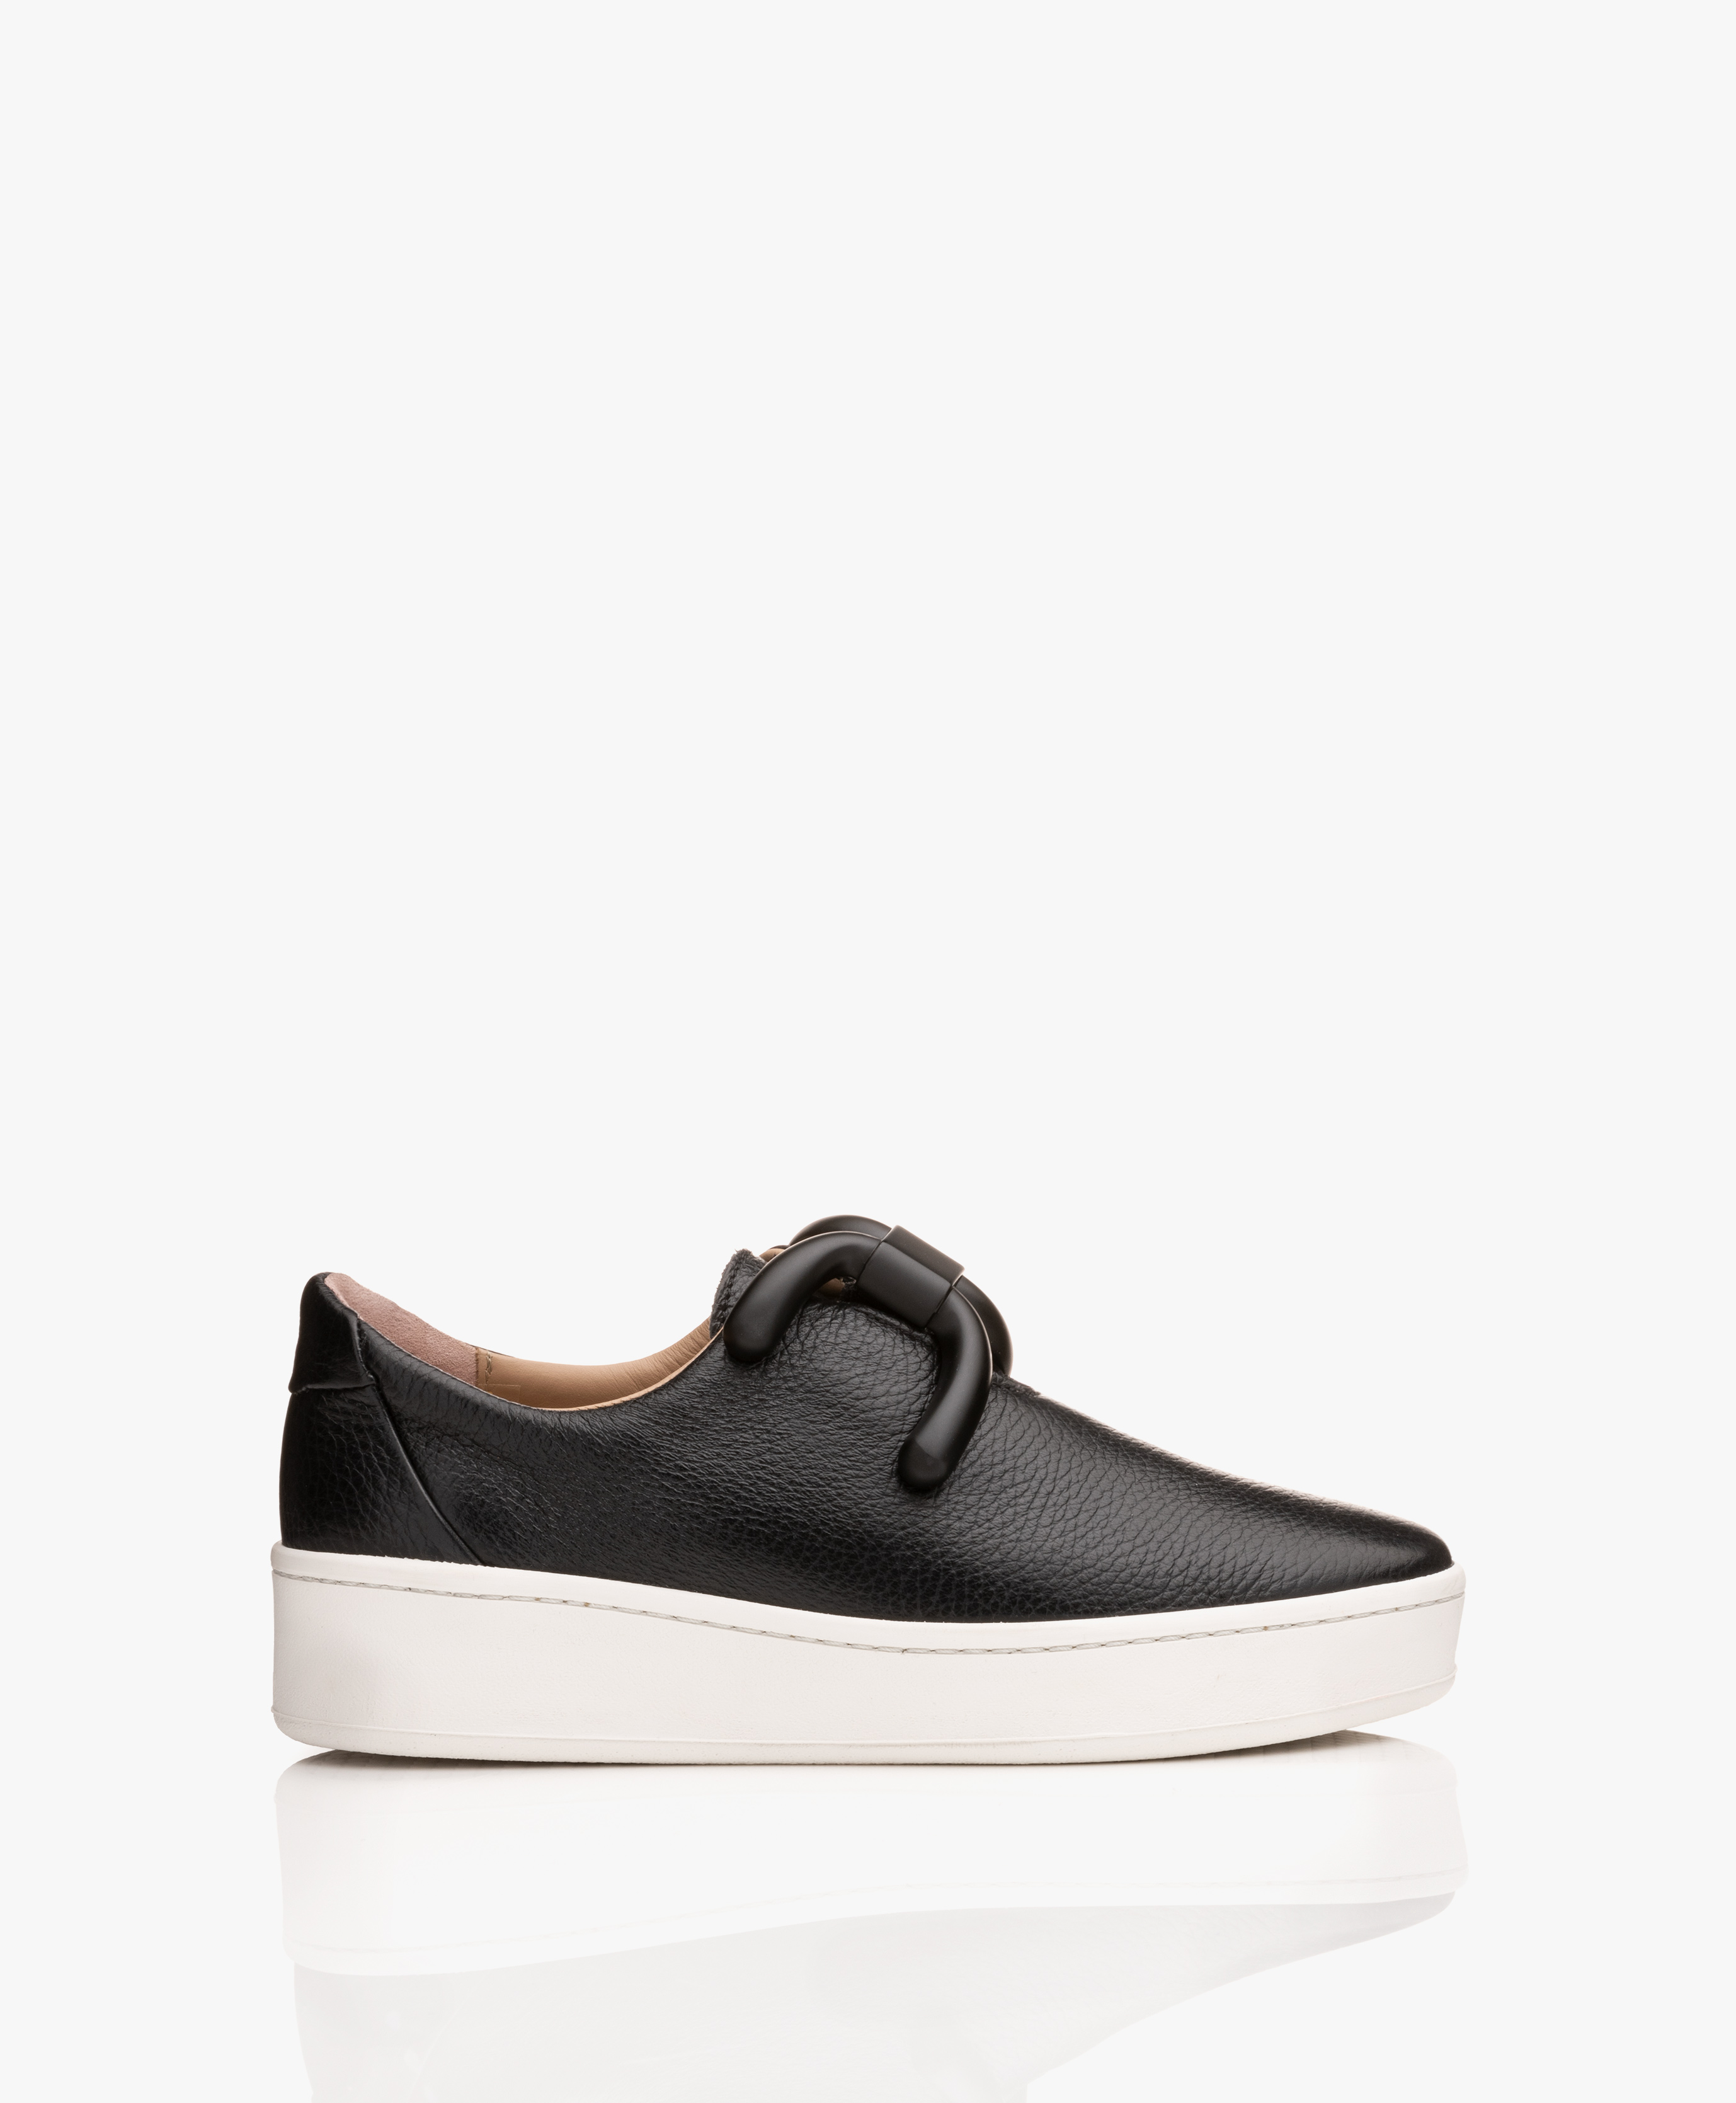 Immagine di An Hour And A Shower Sneakers Knot Platform Slip on in Black